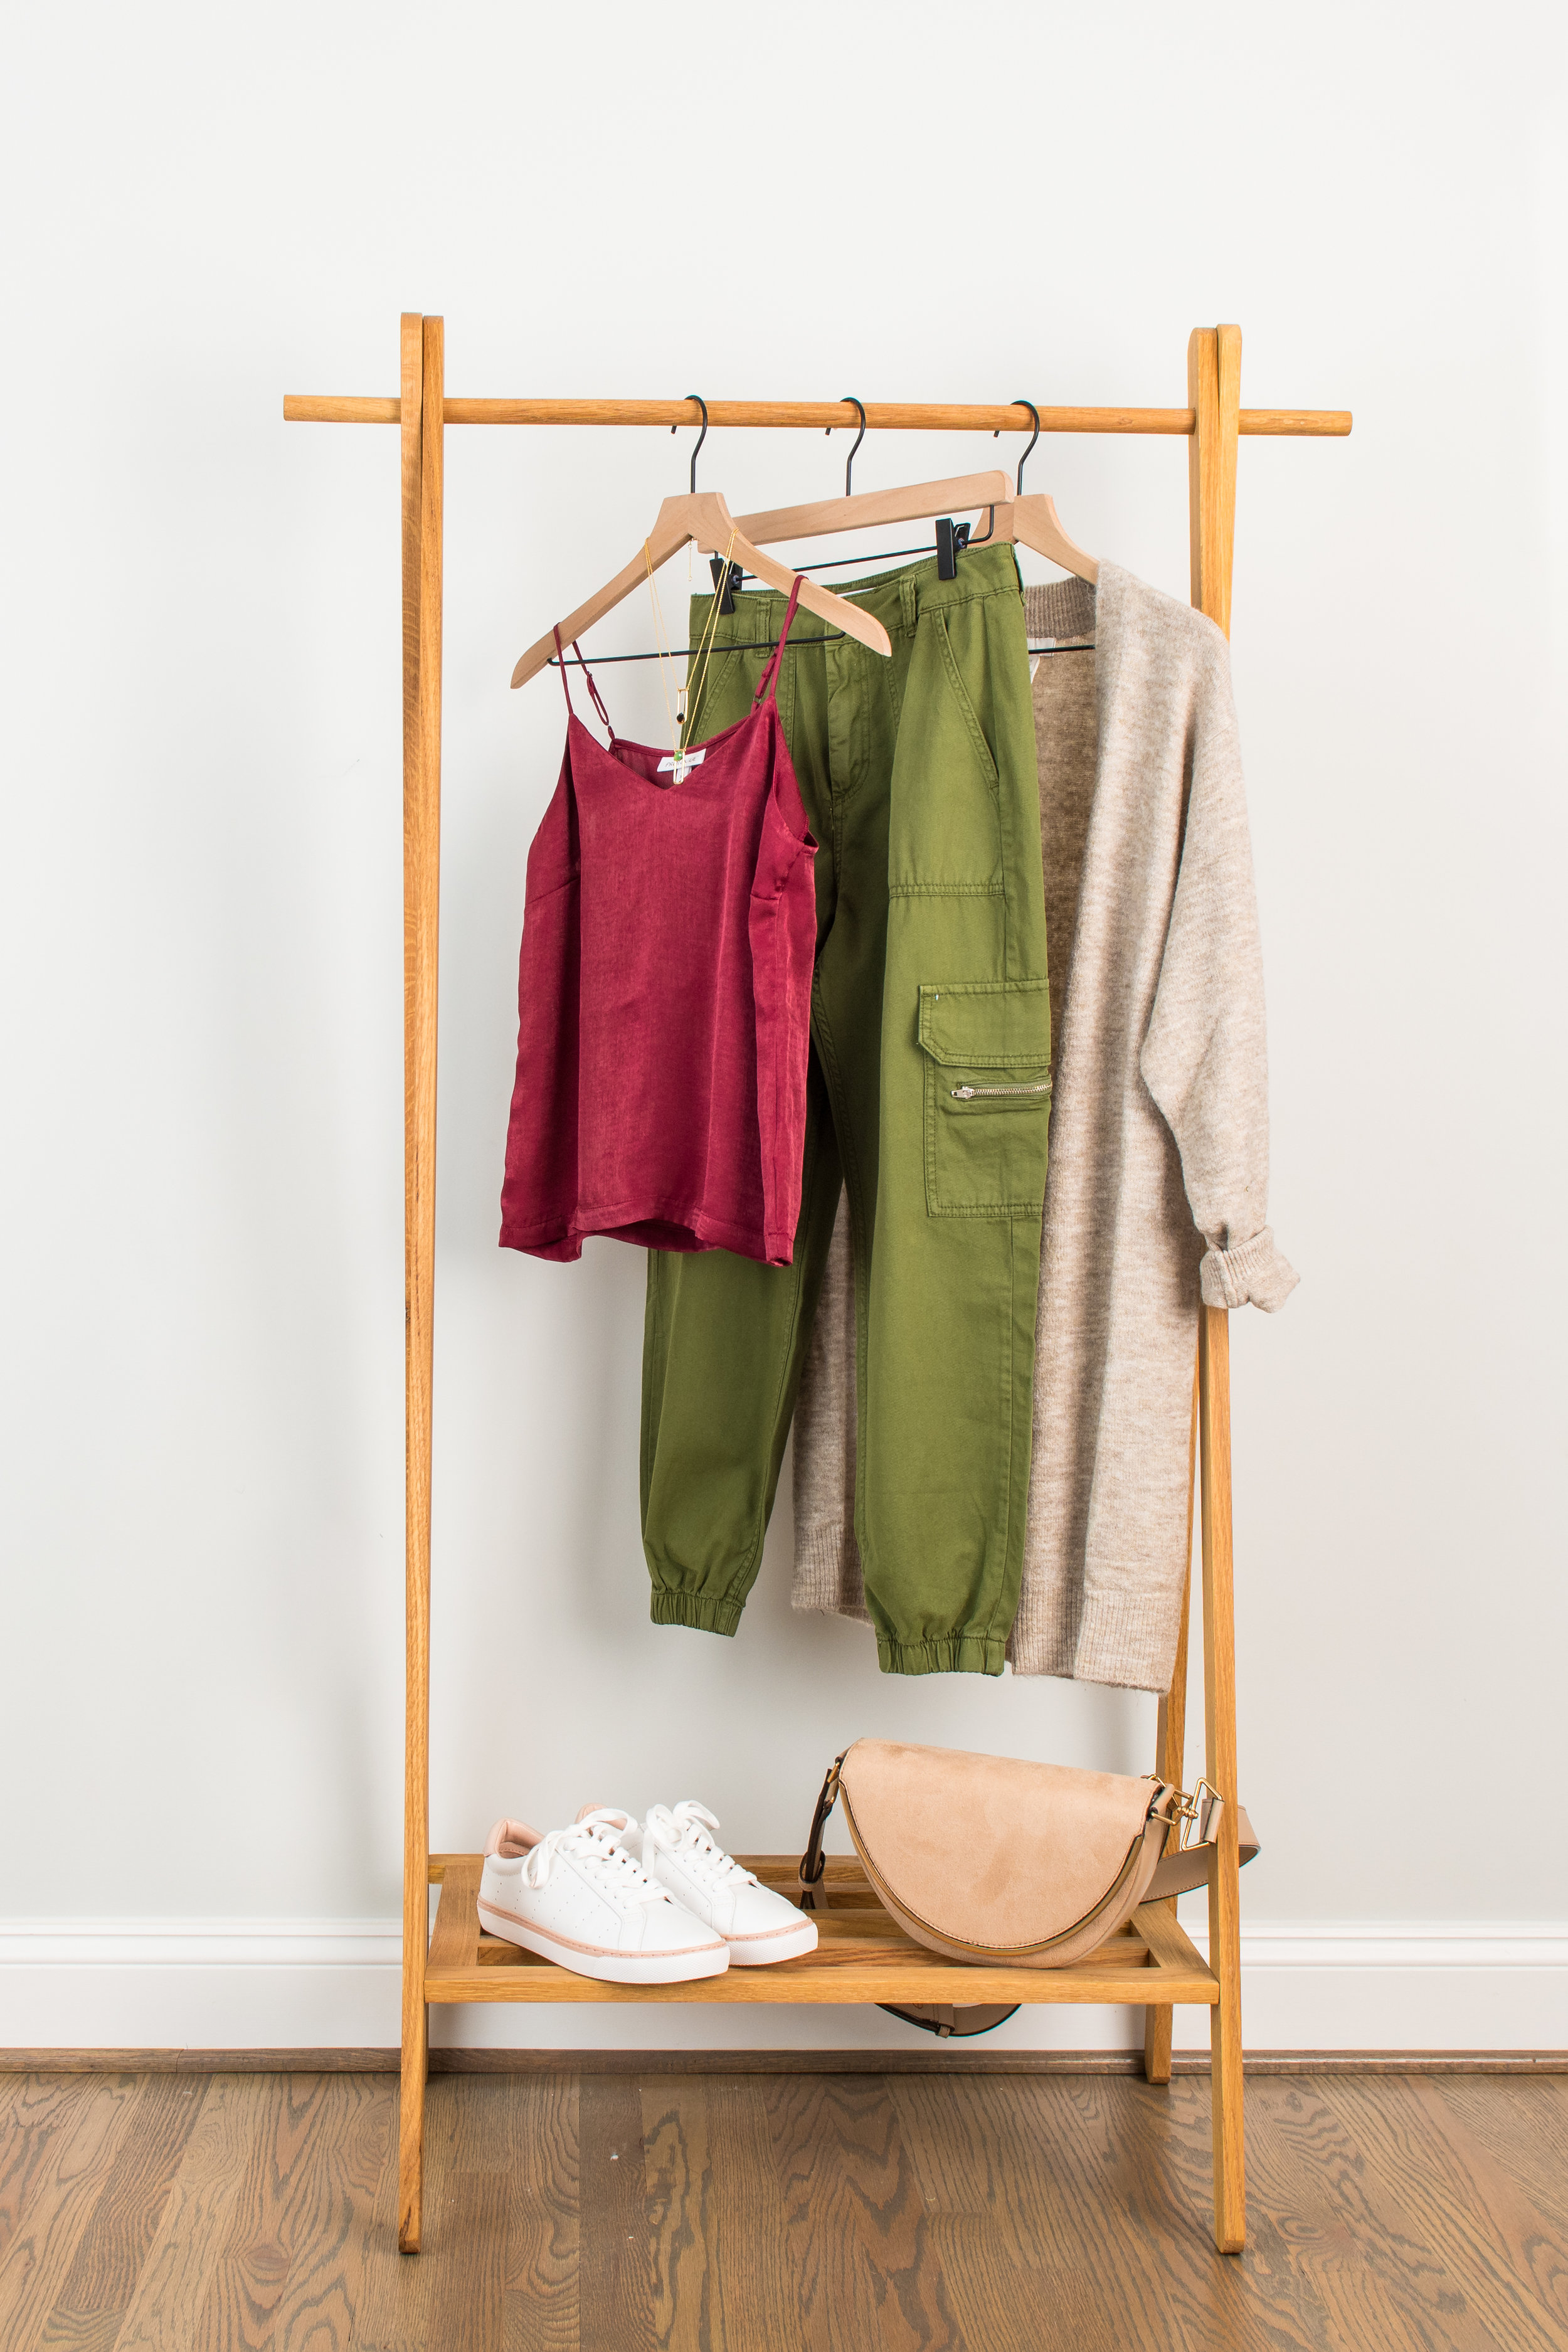 Fall Uniform - Wear to: Brunch or back to school nightSilk Camisole: 1 // 2 // 3Cargo Pant: 1 // 2 // 3Cardigan: 1 // 2 // 3Sneakers: 1 // 2 // 3Necklace: 1 // 2 // 3Bag : 1 // 2 // 3